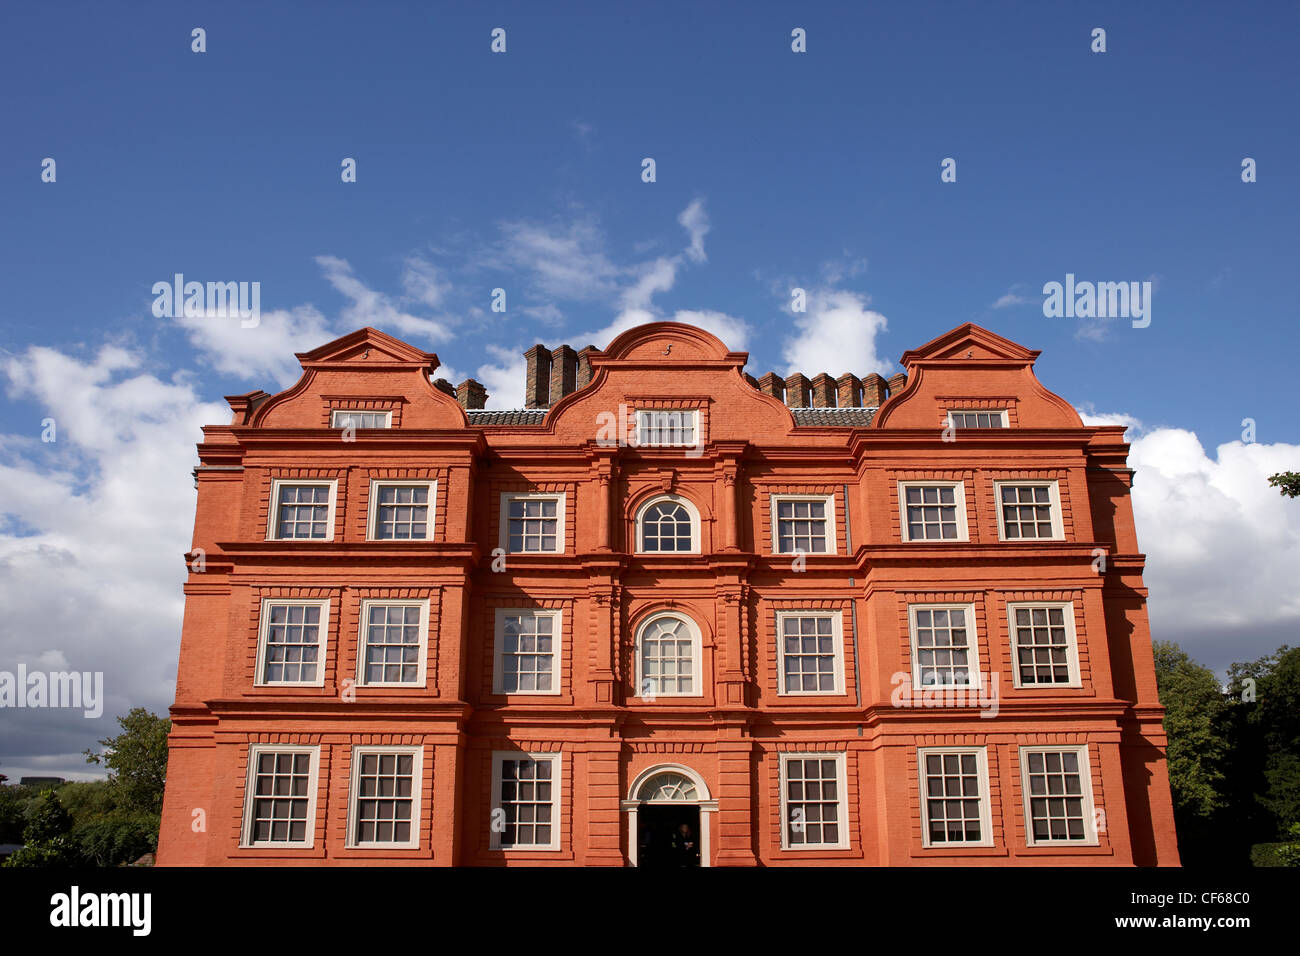 The Dutch House. Historically significant for its association with the Royal family, the Dutch House (now known - Stock Image